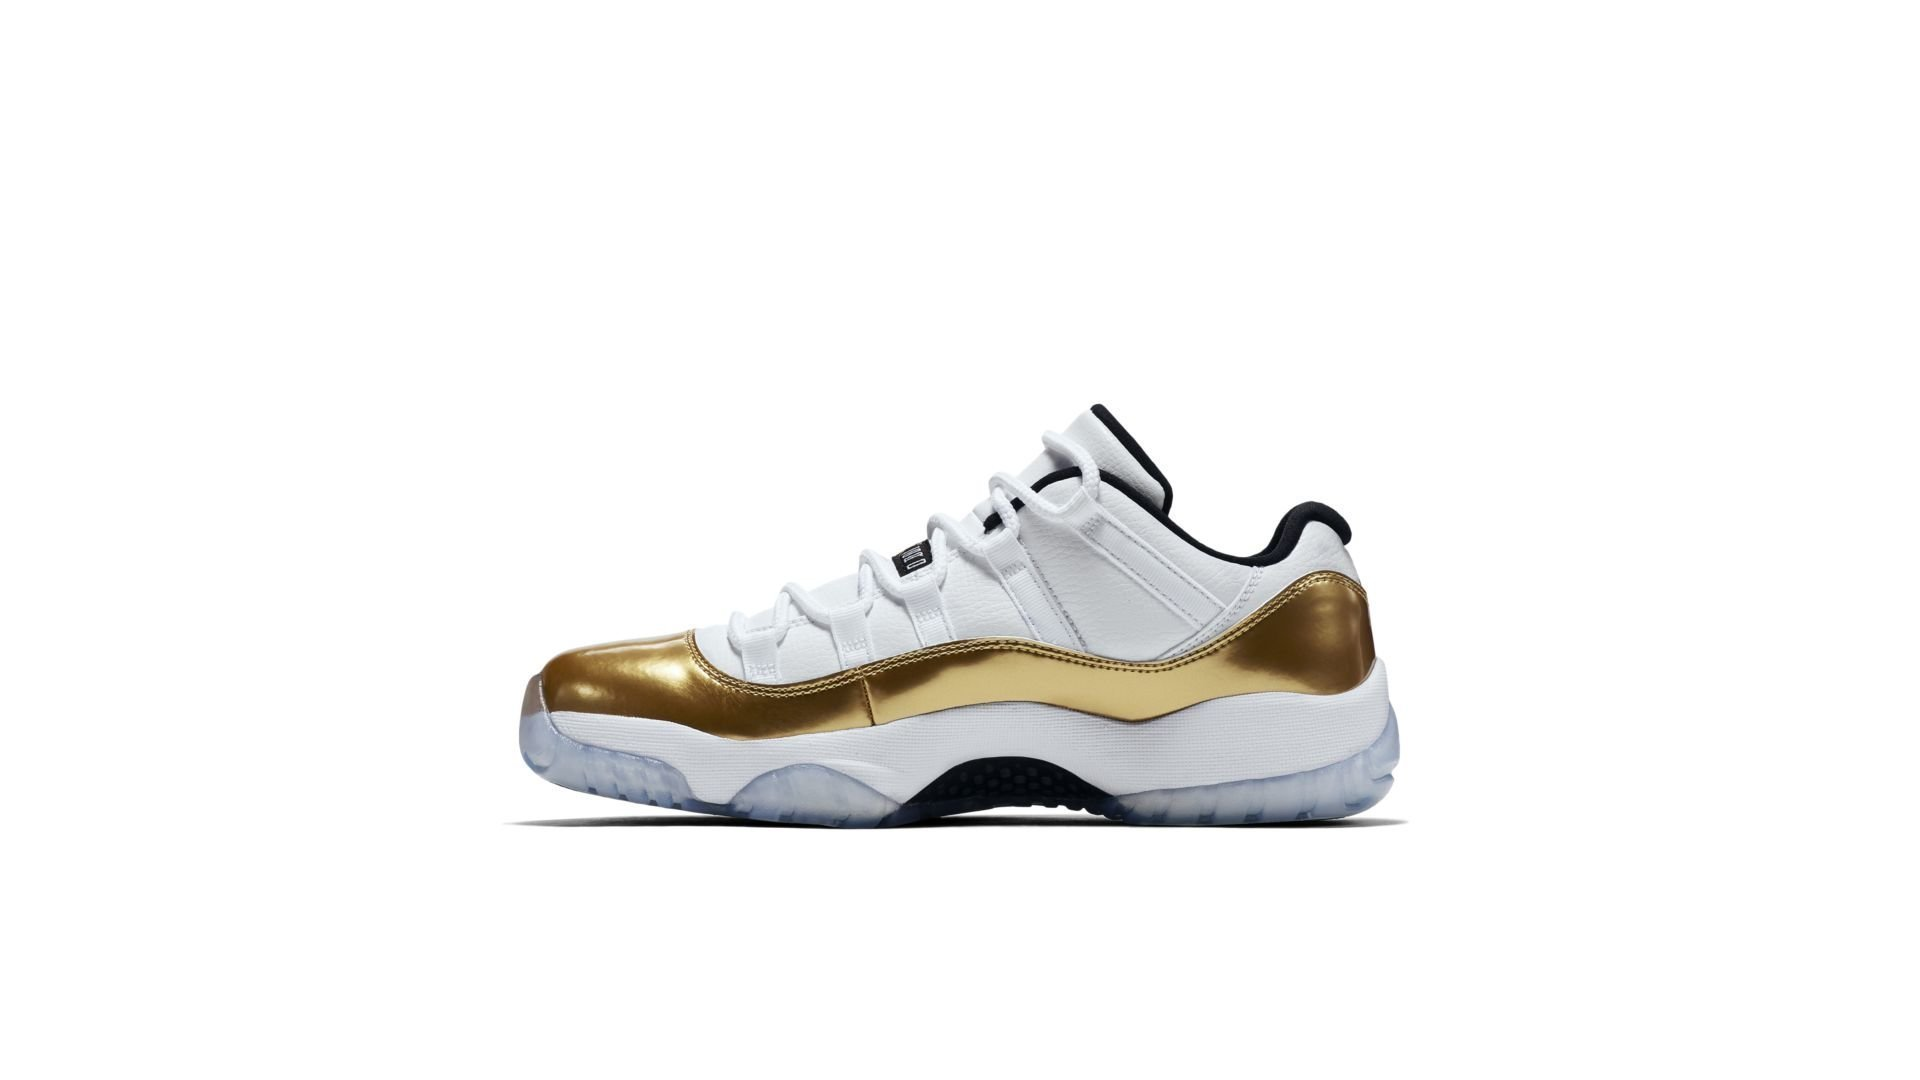 Jordan 11 Retro Low Closing Ceremony (528895-103)